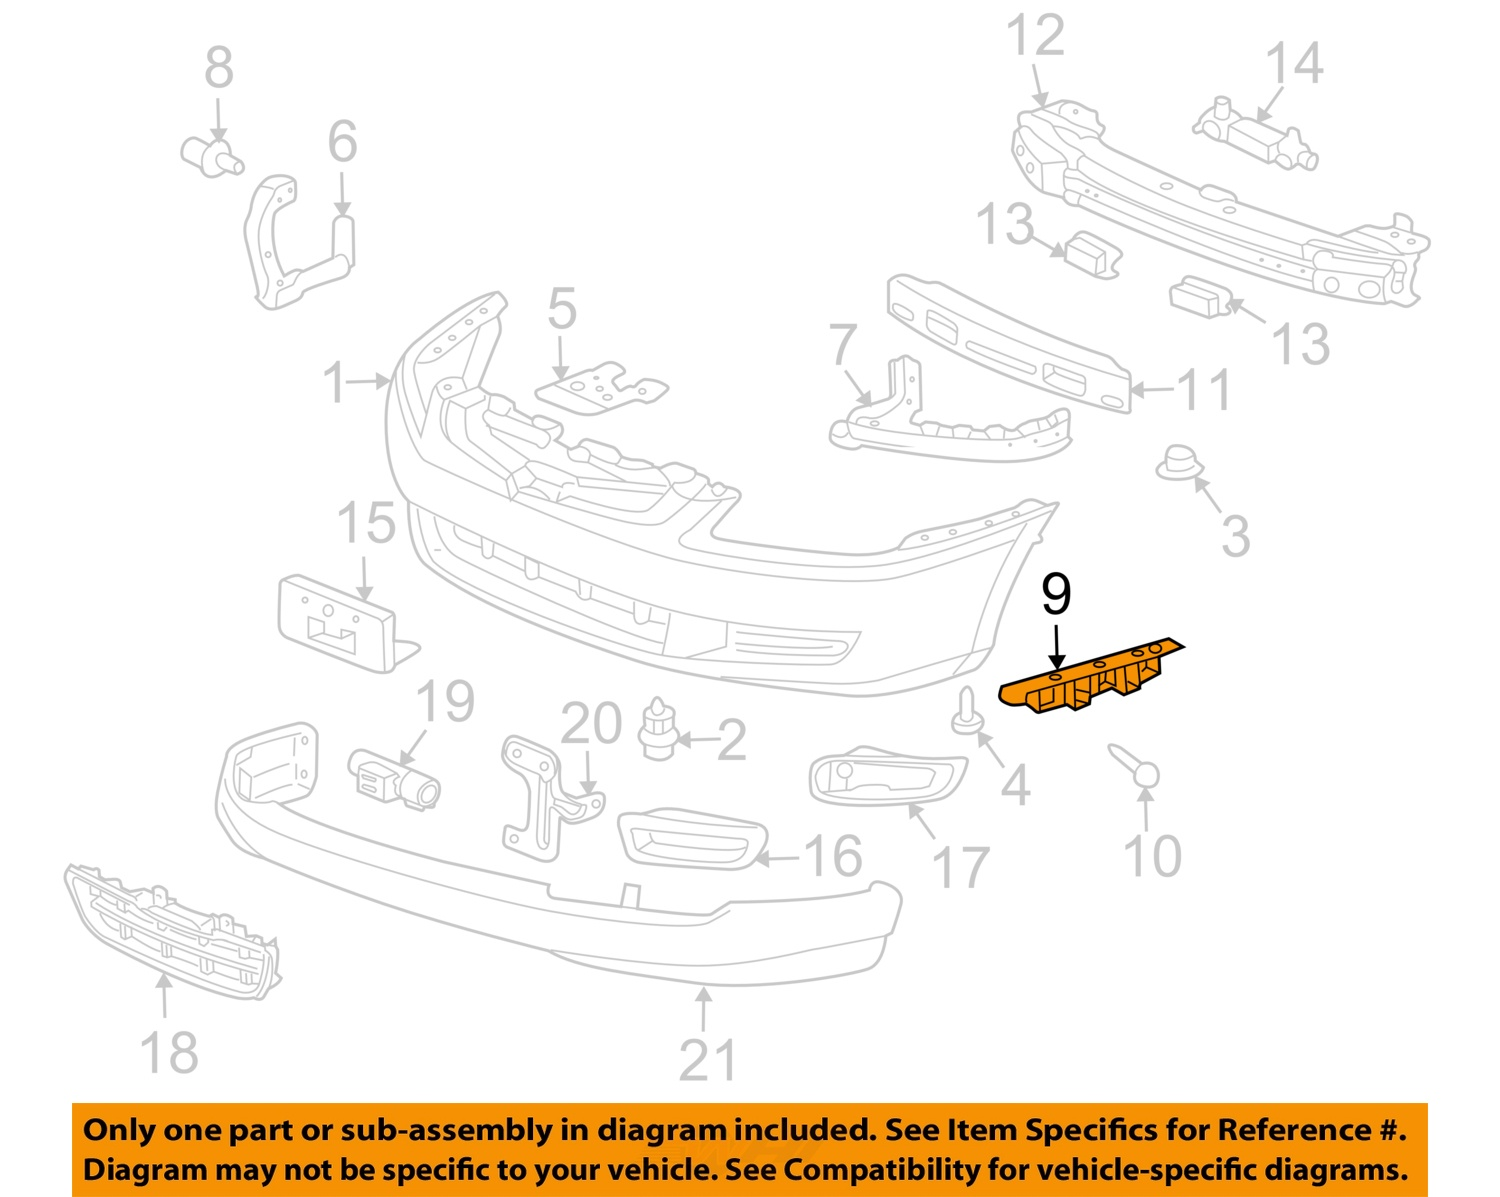 honda accord parts diagram holden colorado radio wiring oem 03 07 front bumper side support bracket